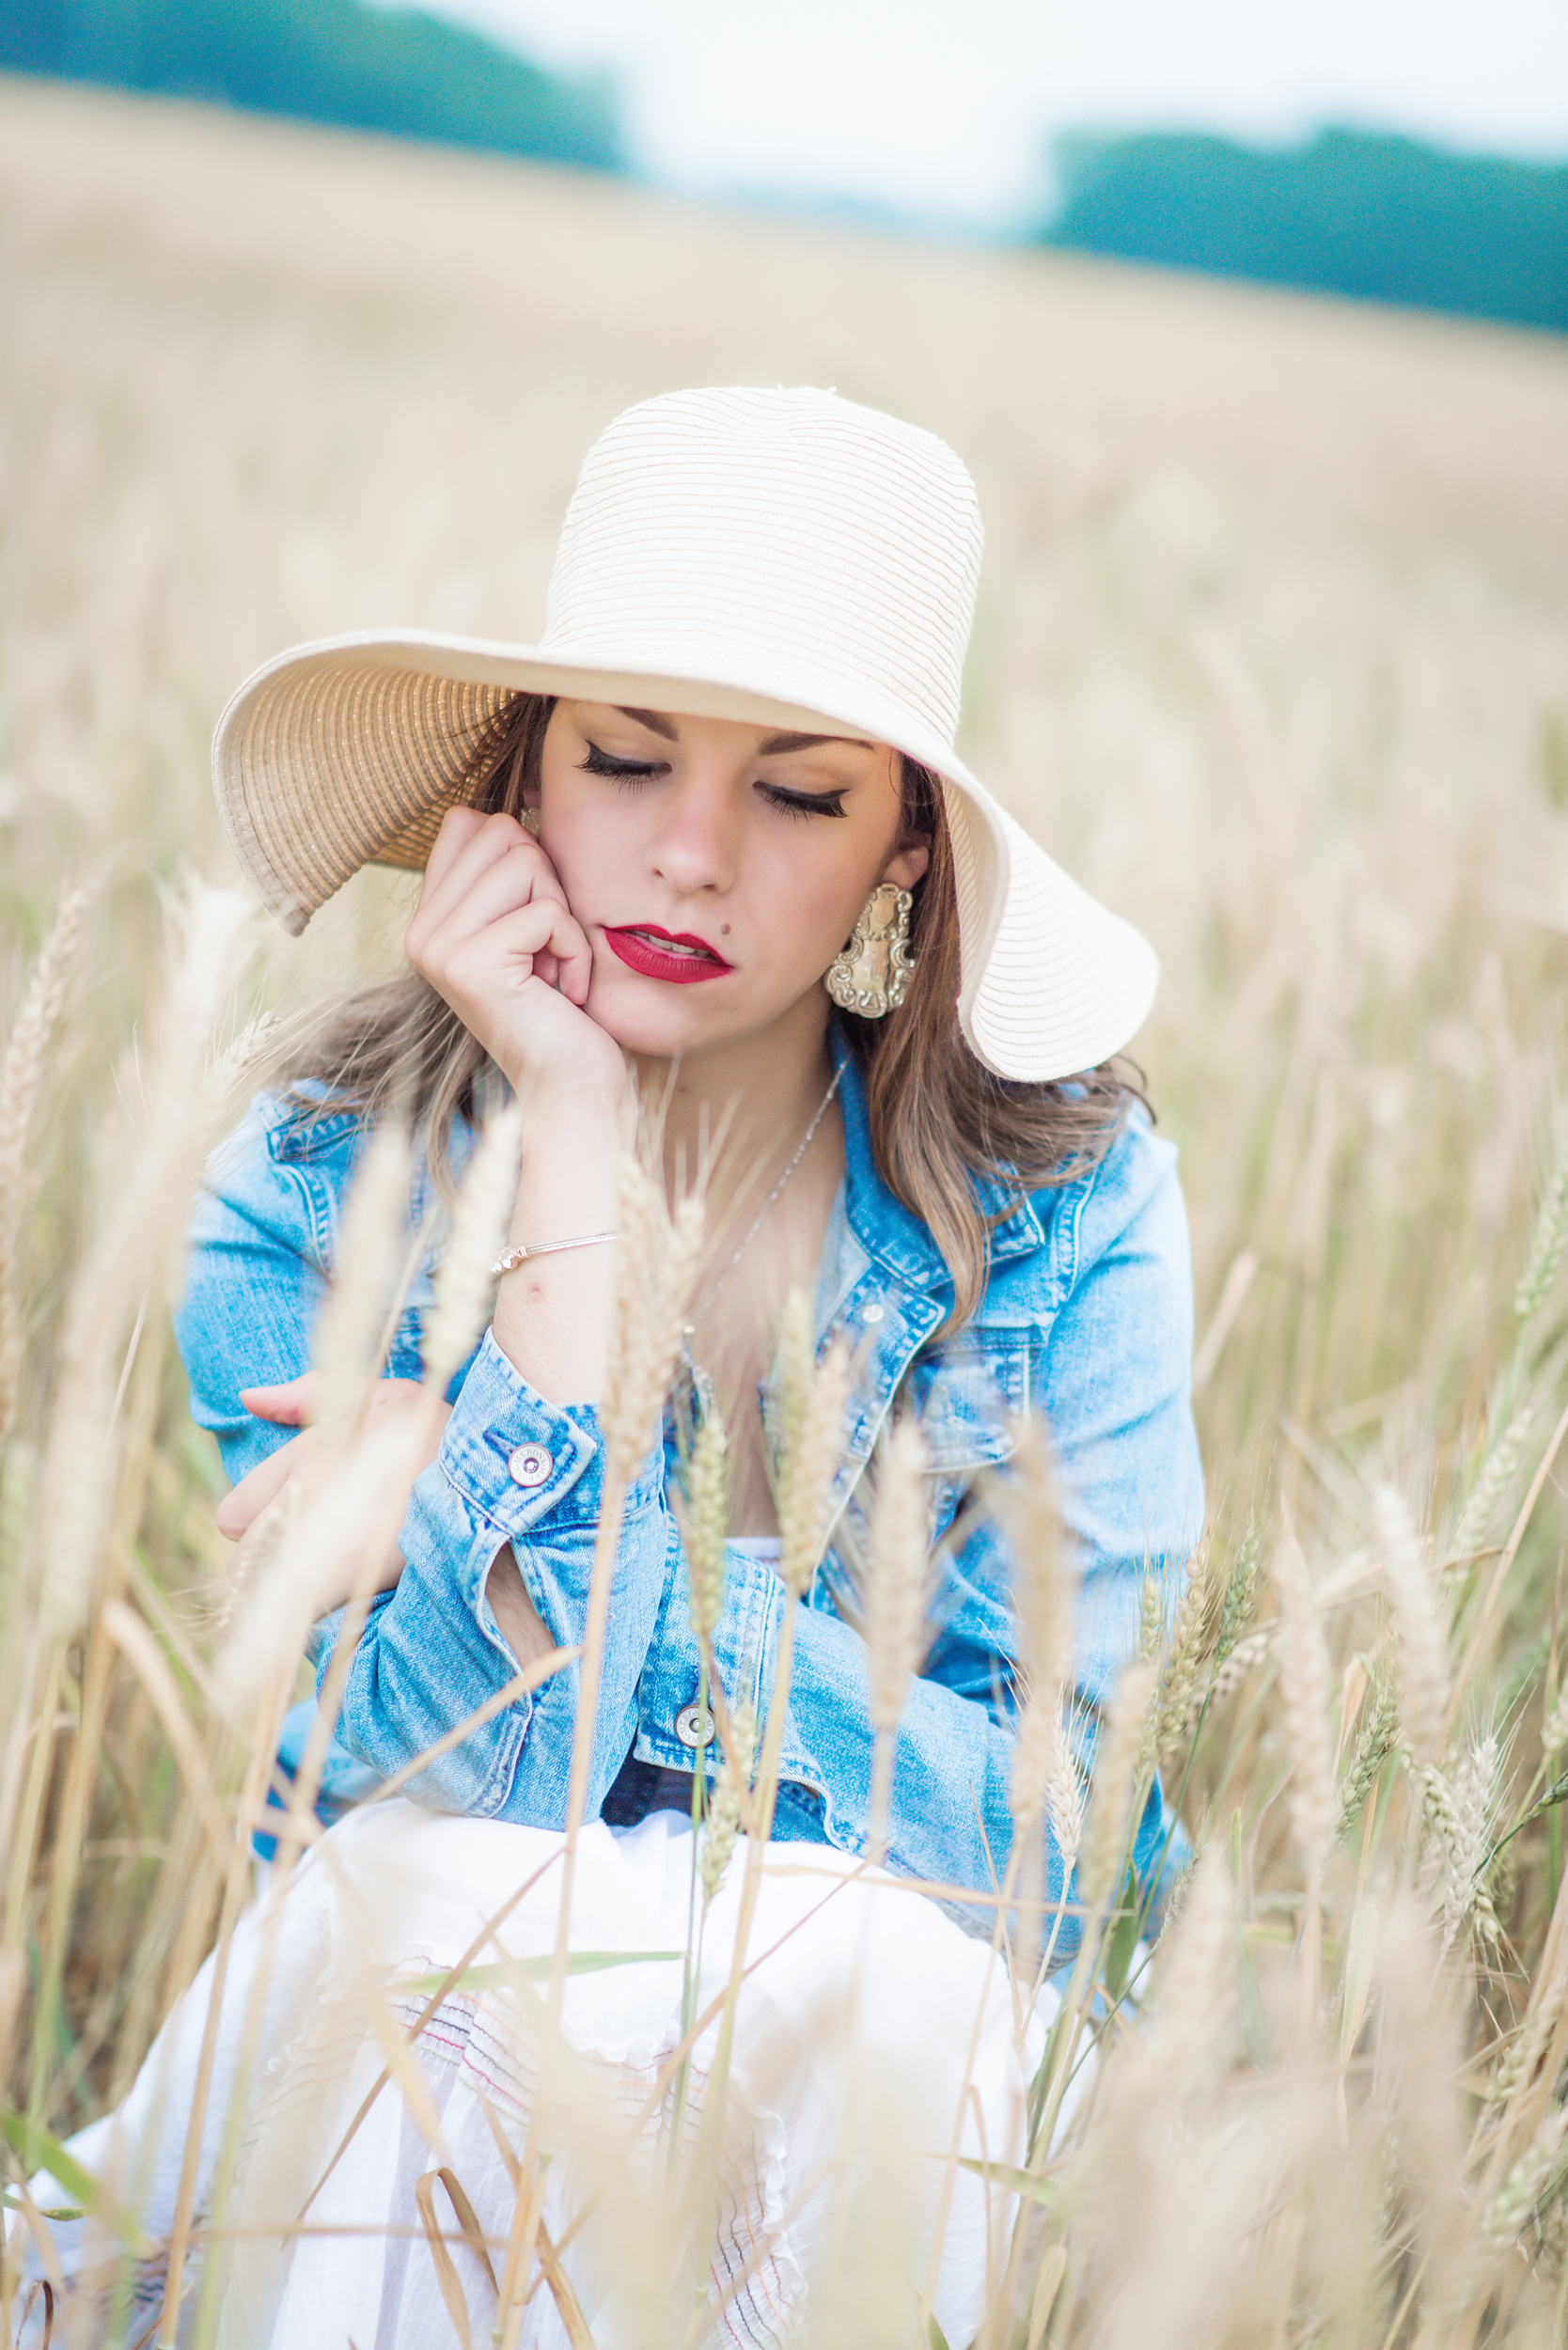 high school senior wheat field close up - boquet beach portraits - silverhill, alabama